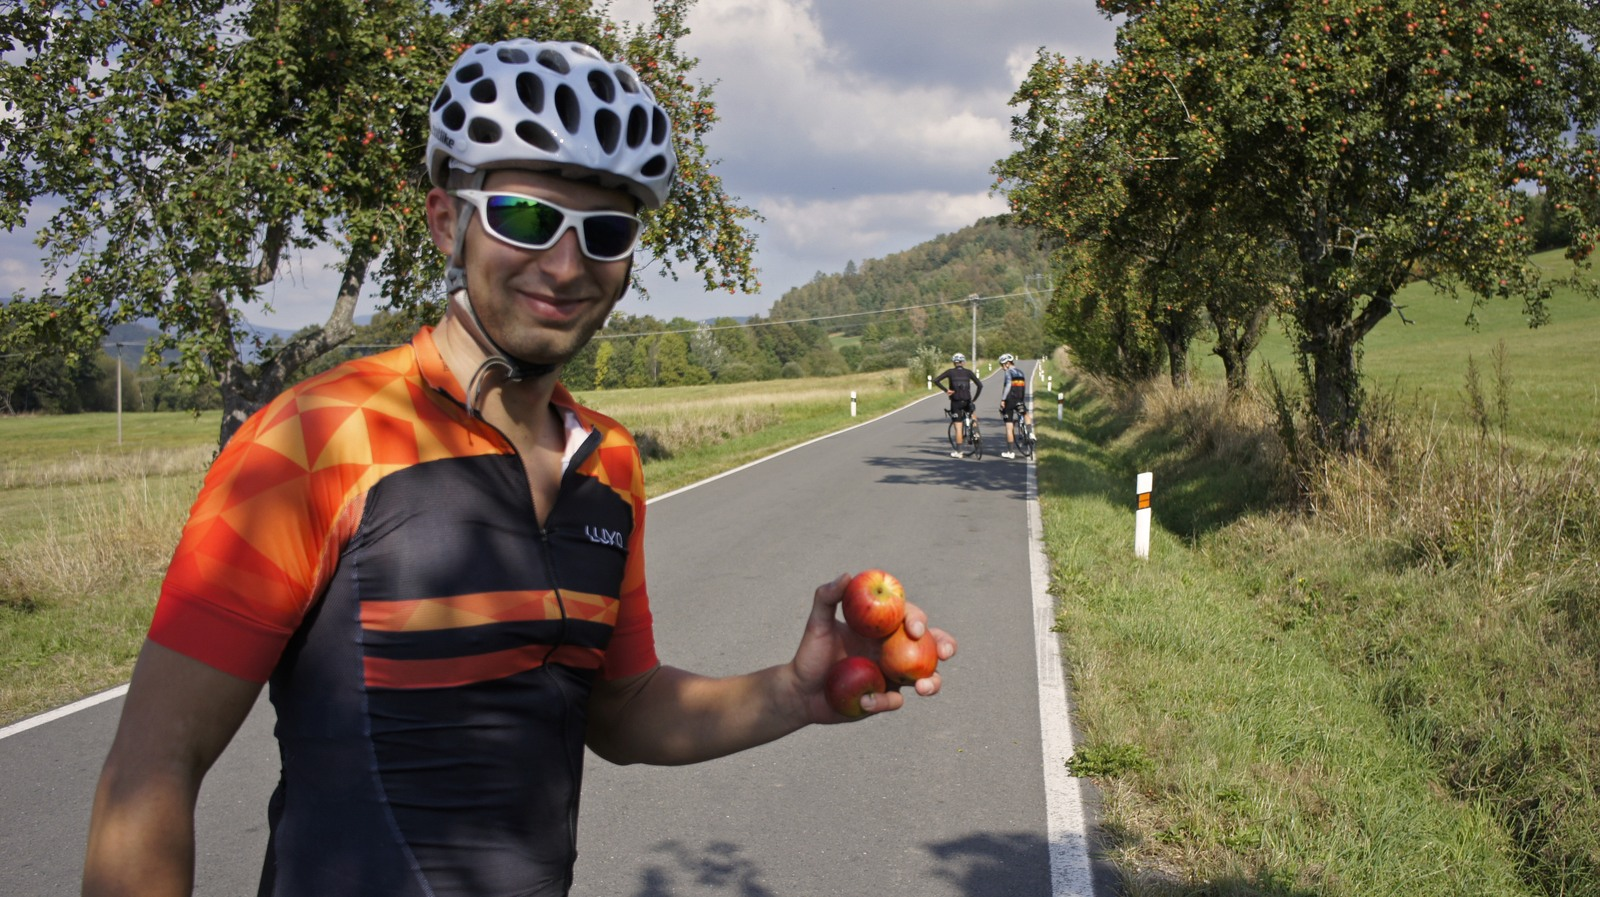 cycling break for apple stop